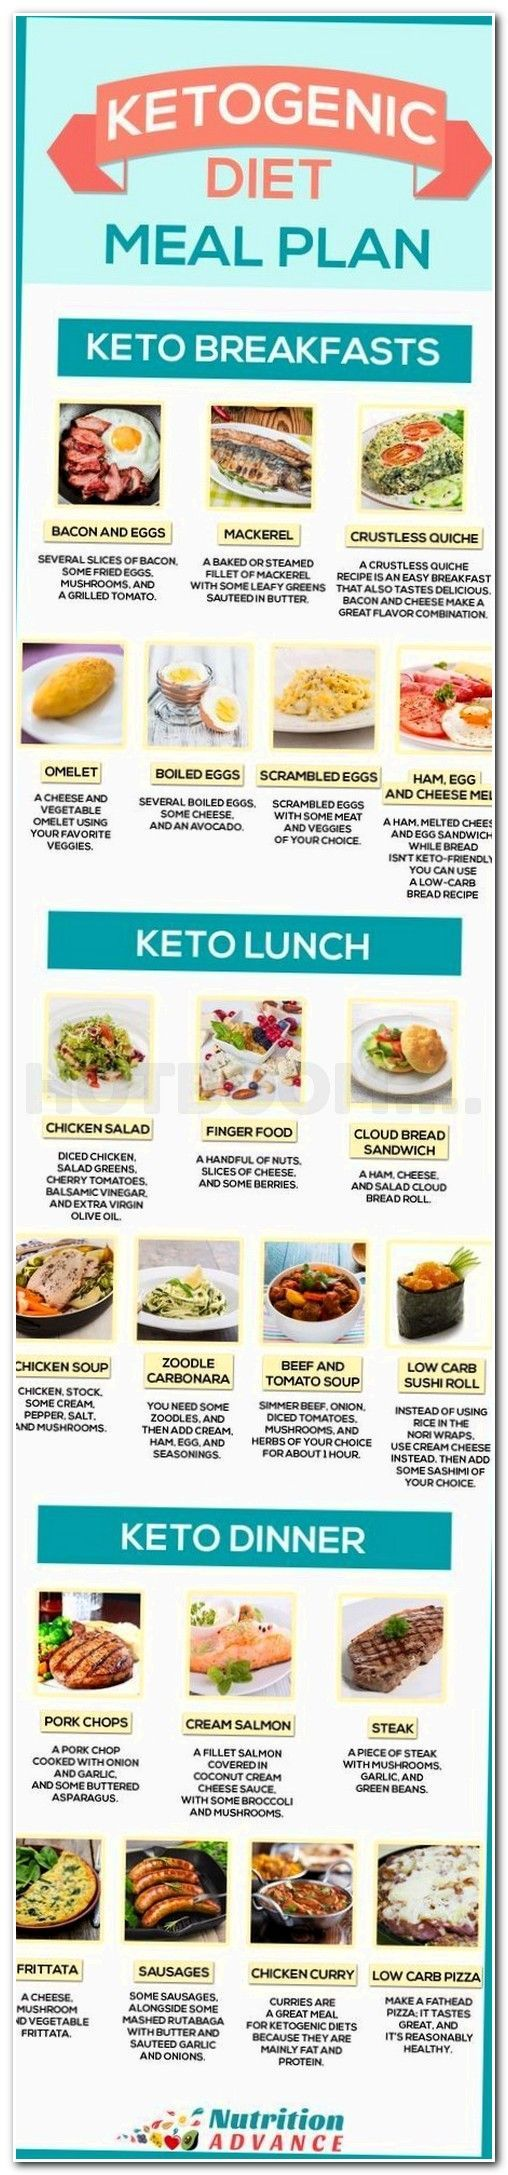 The Beauty Detox Foods by Kimberly Snyder (2013): What to eat and foods to avoid